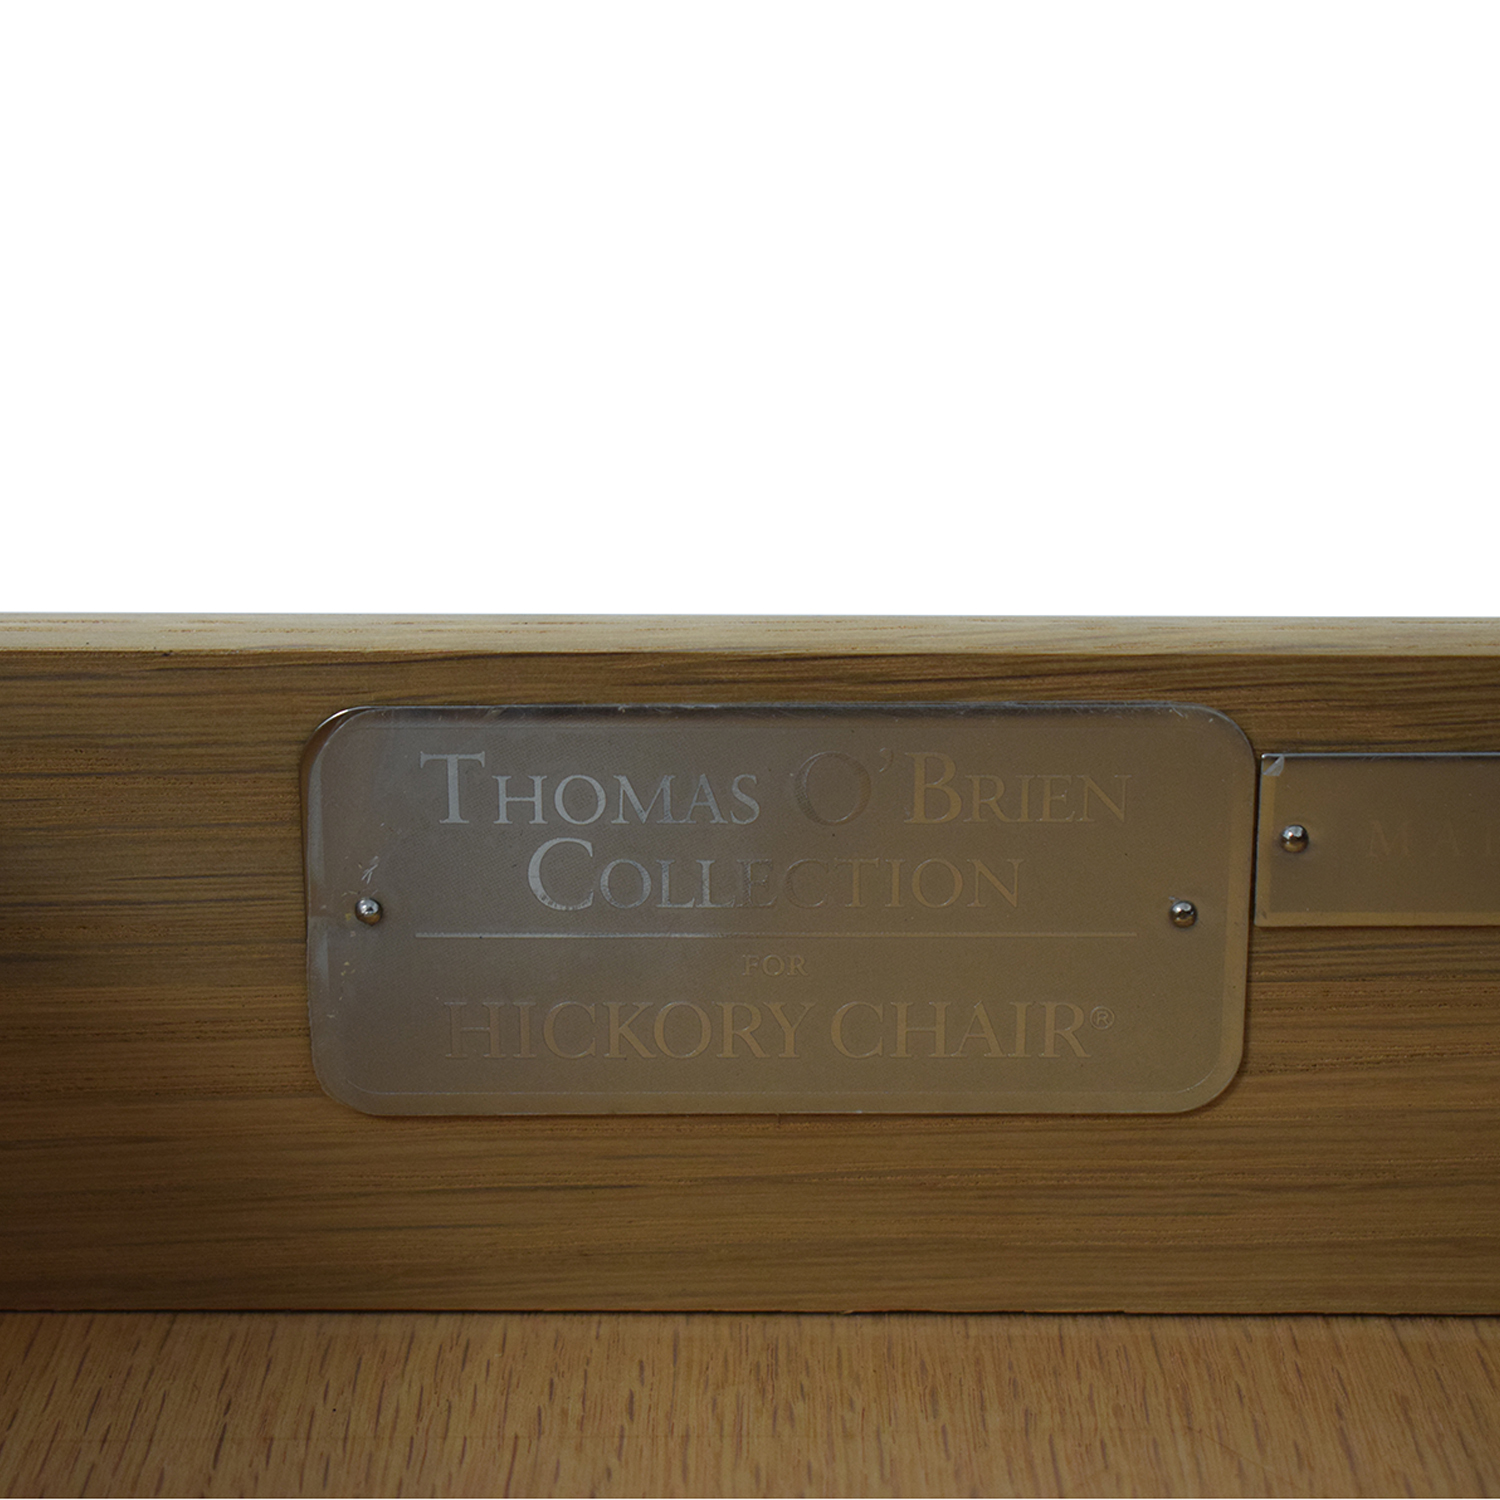 buy Hickory Chair Thomas O'Brien For Hickory Chair Keith Desk online